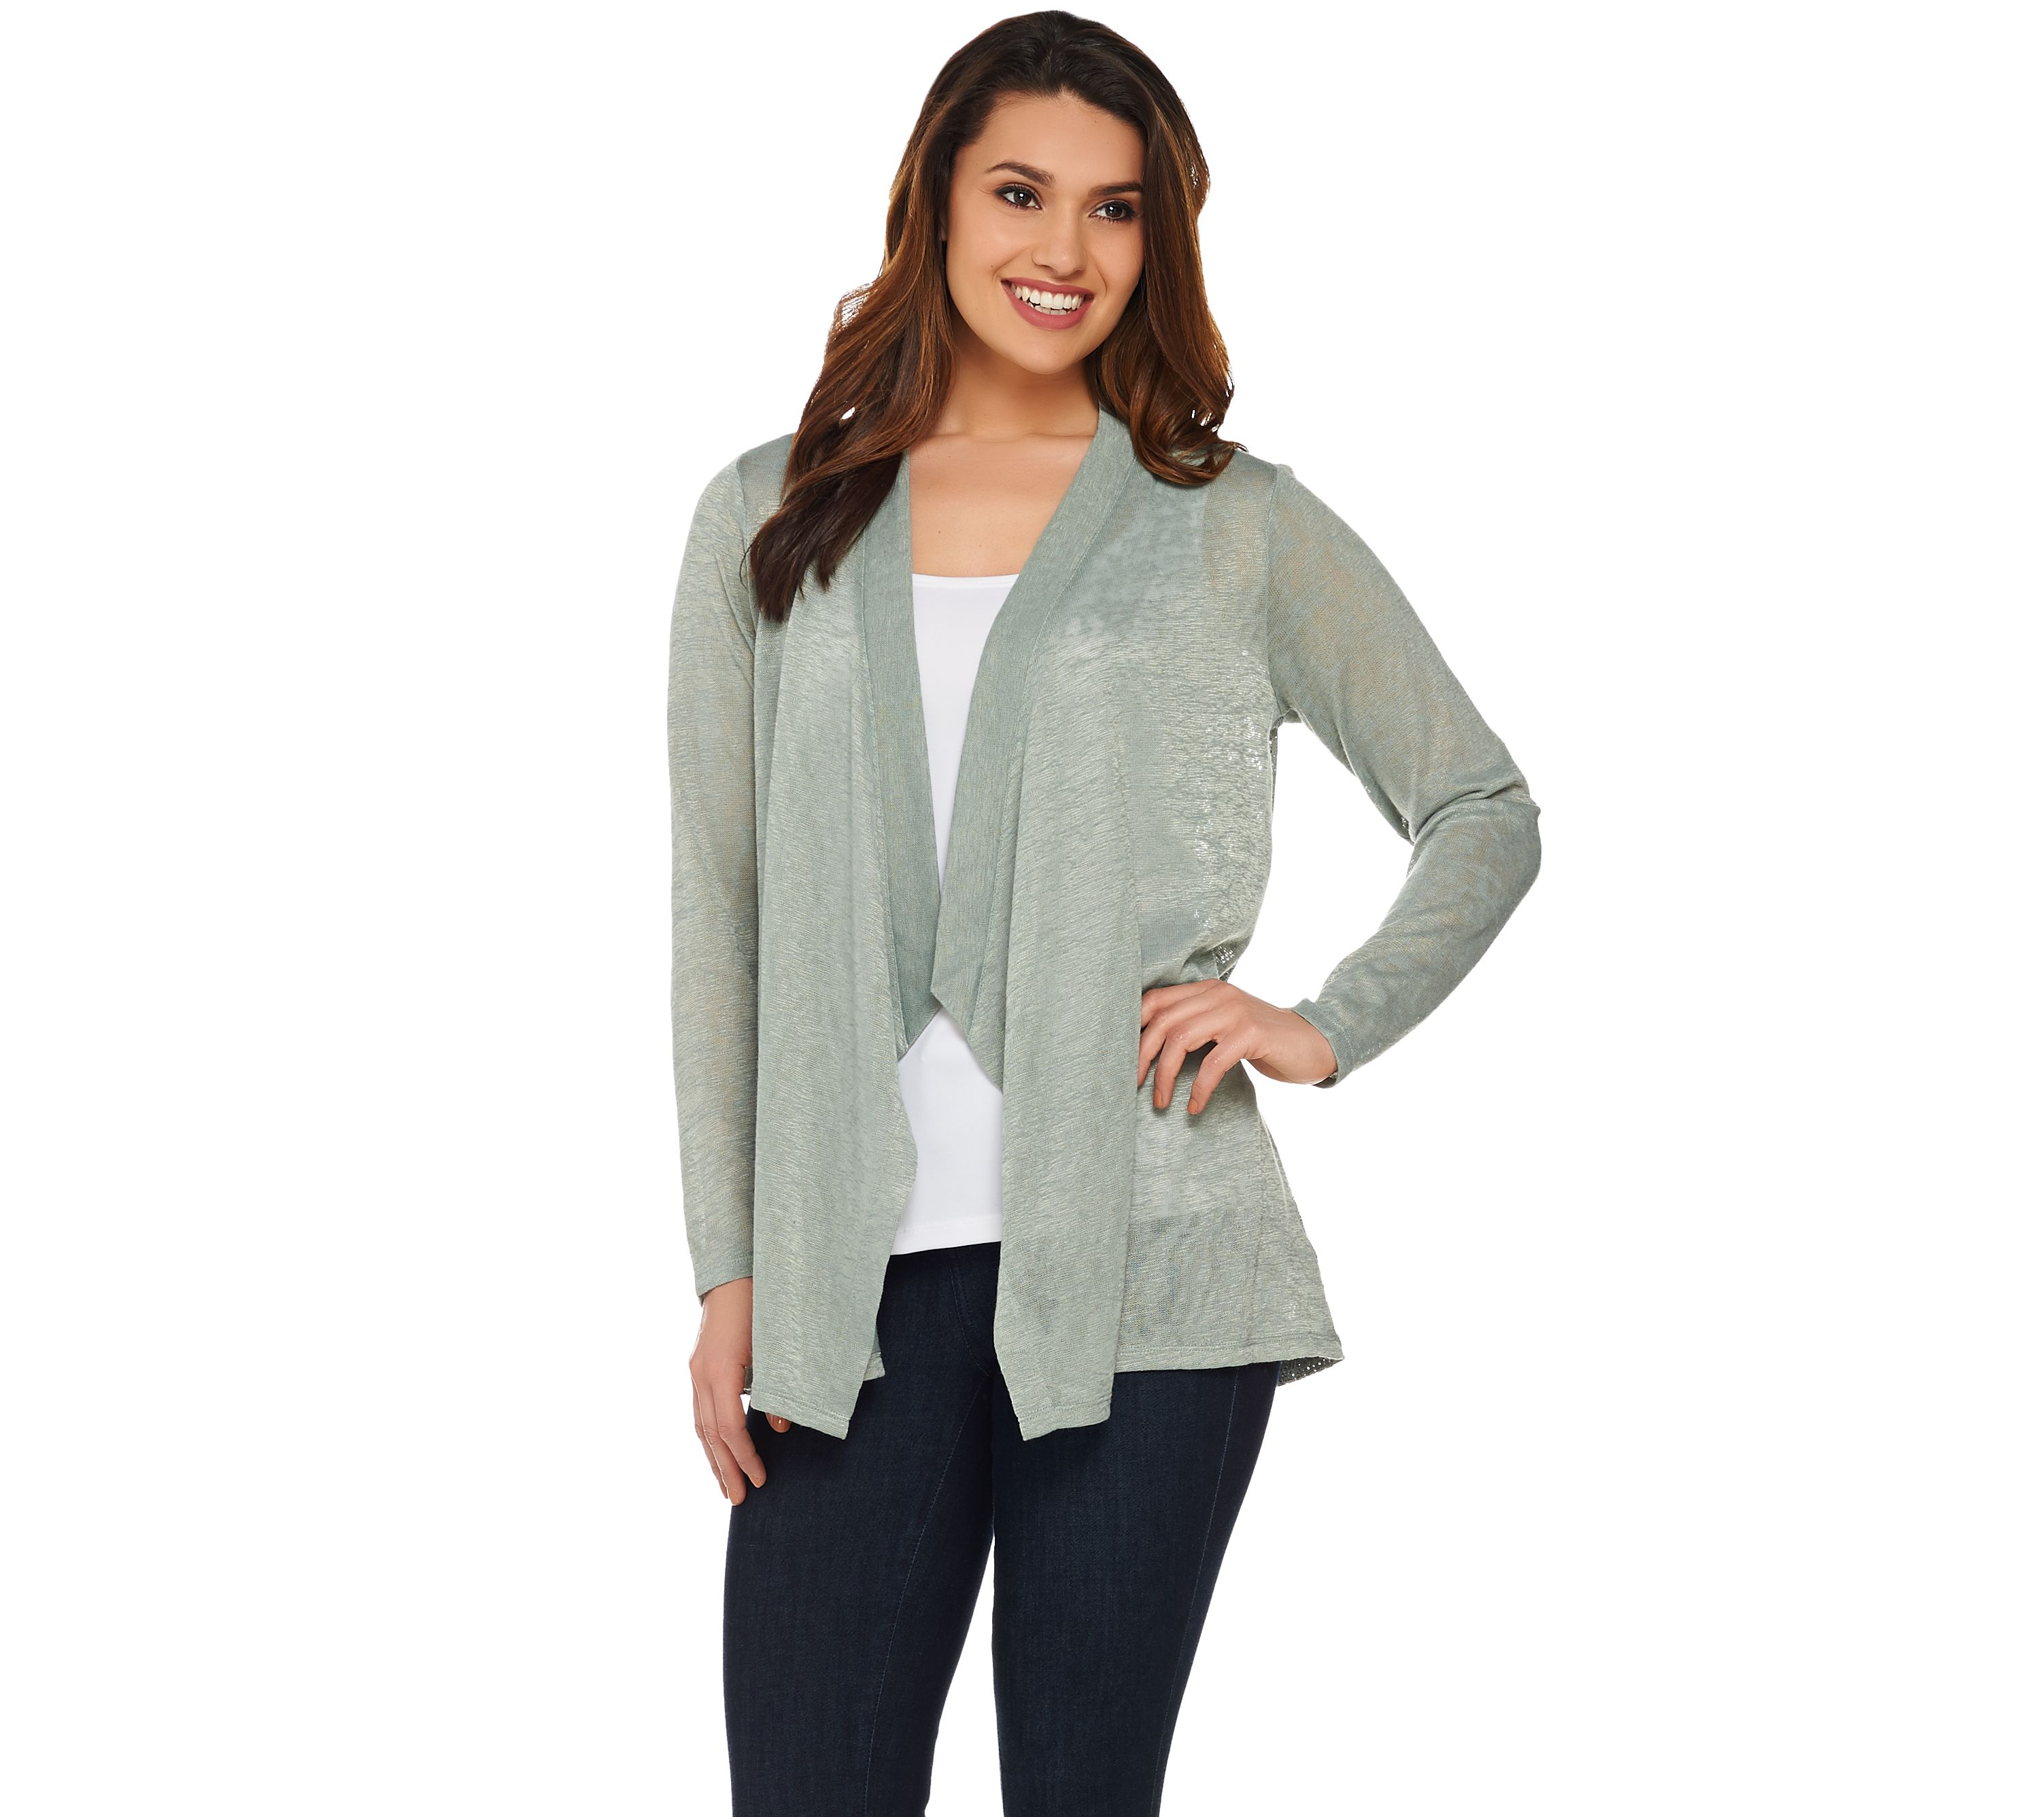 wms cardigan long top knit ribbed open drape front drapes sleeve womens fitted casual sweater bc